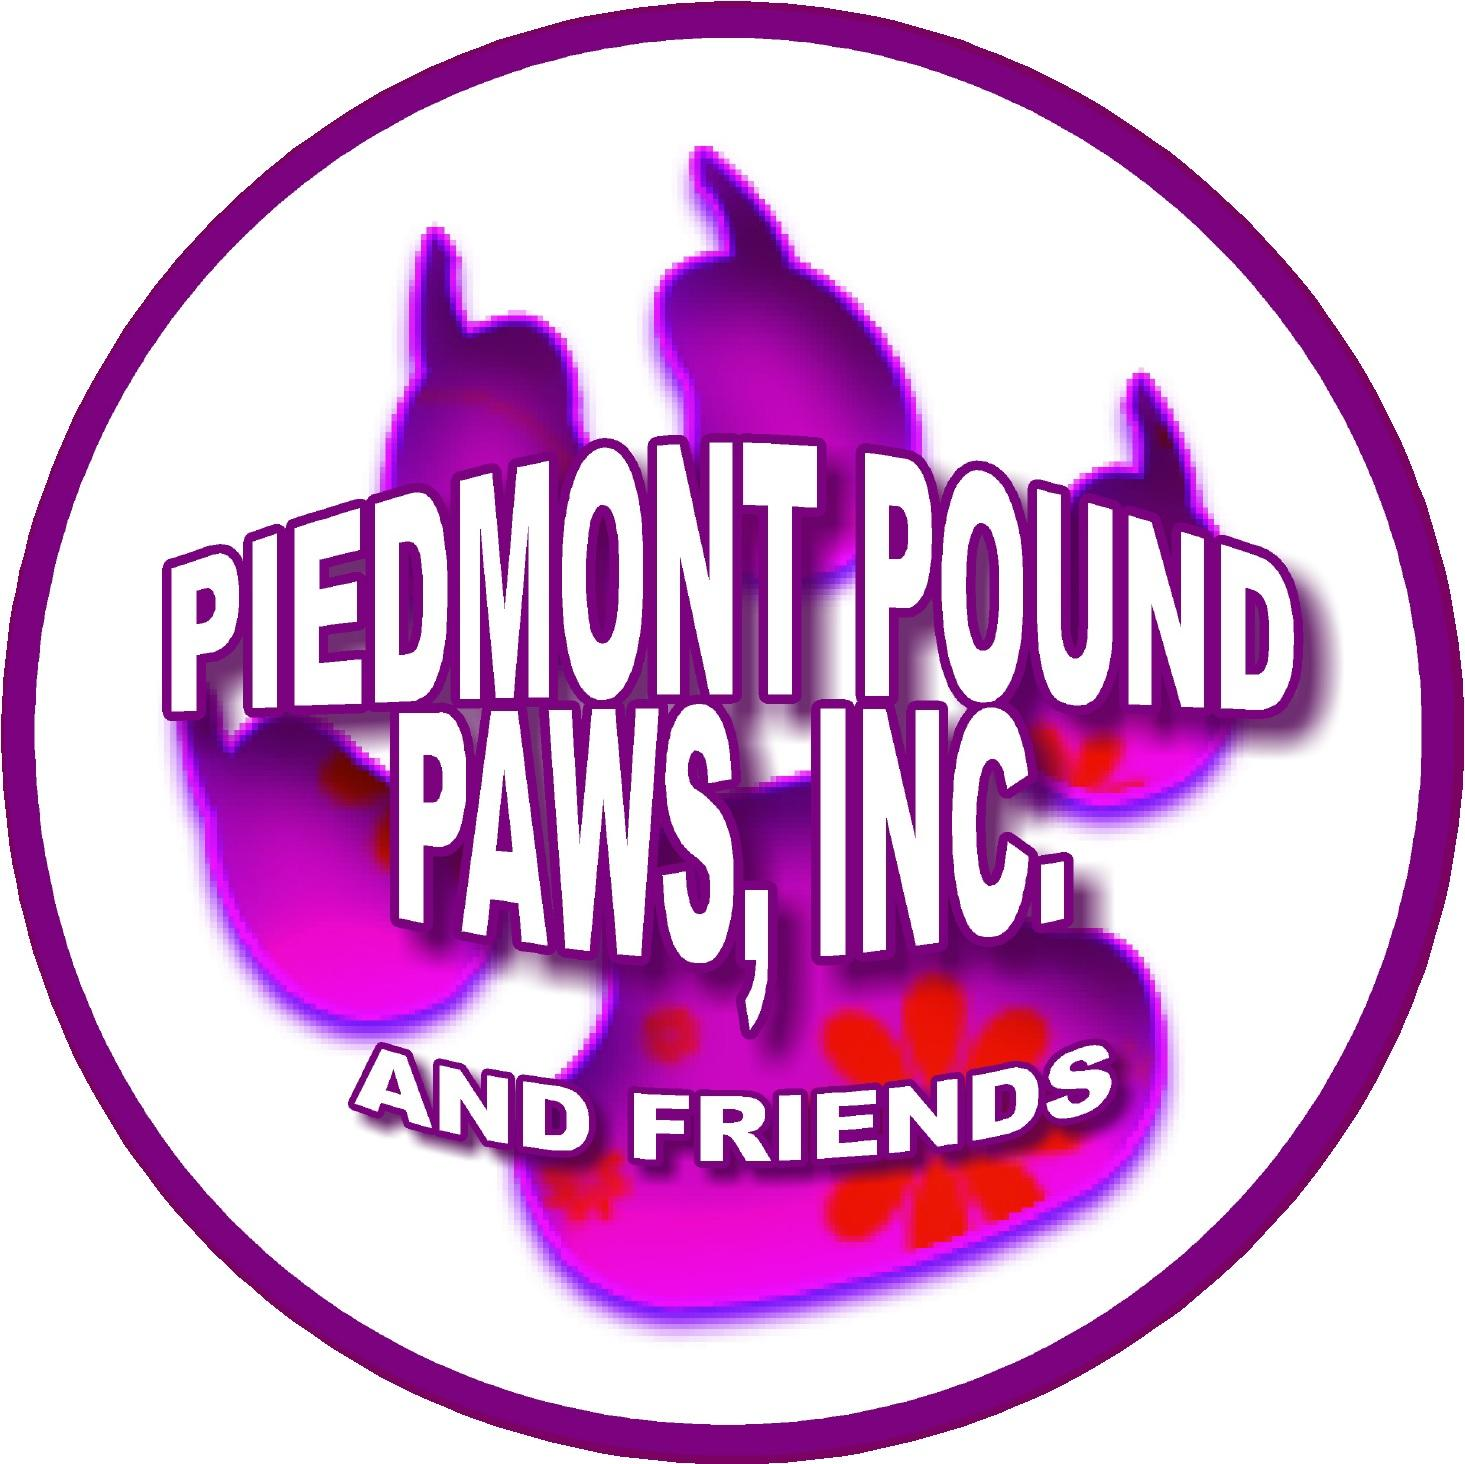 Piedmont Pound Paws, Inc.